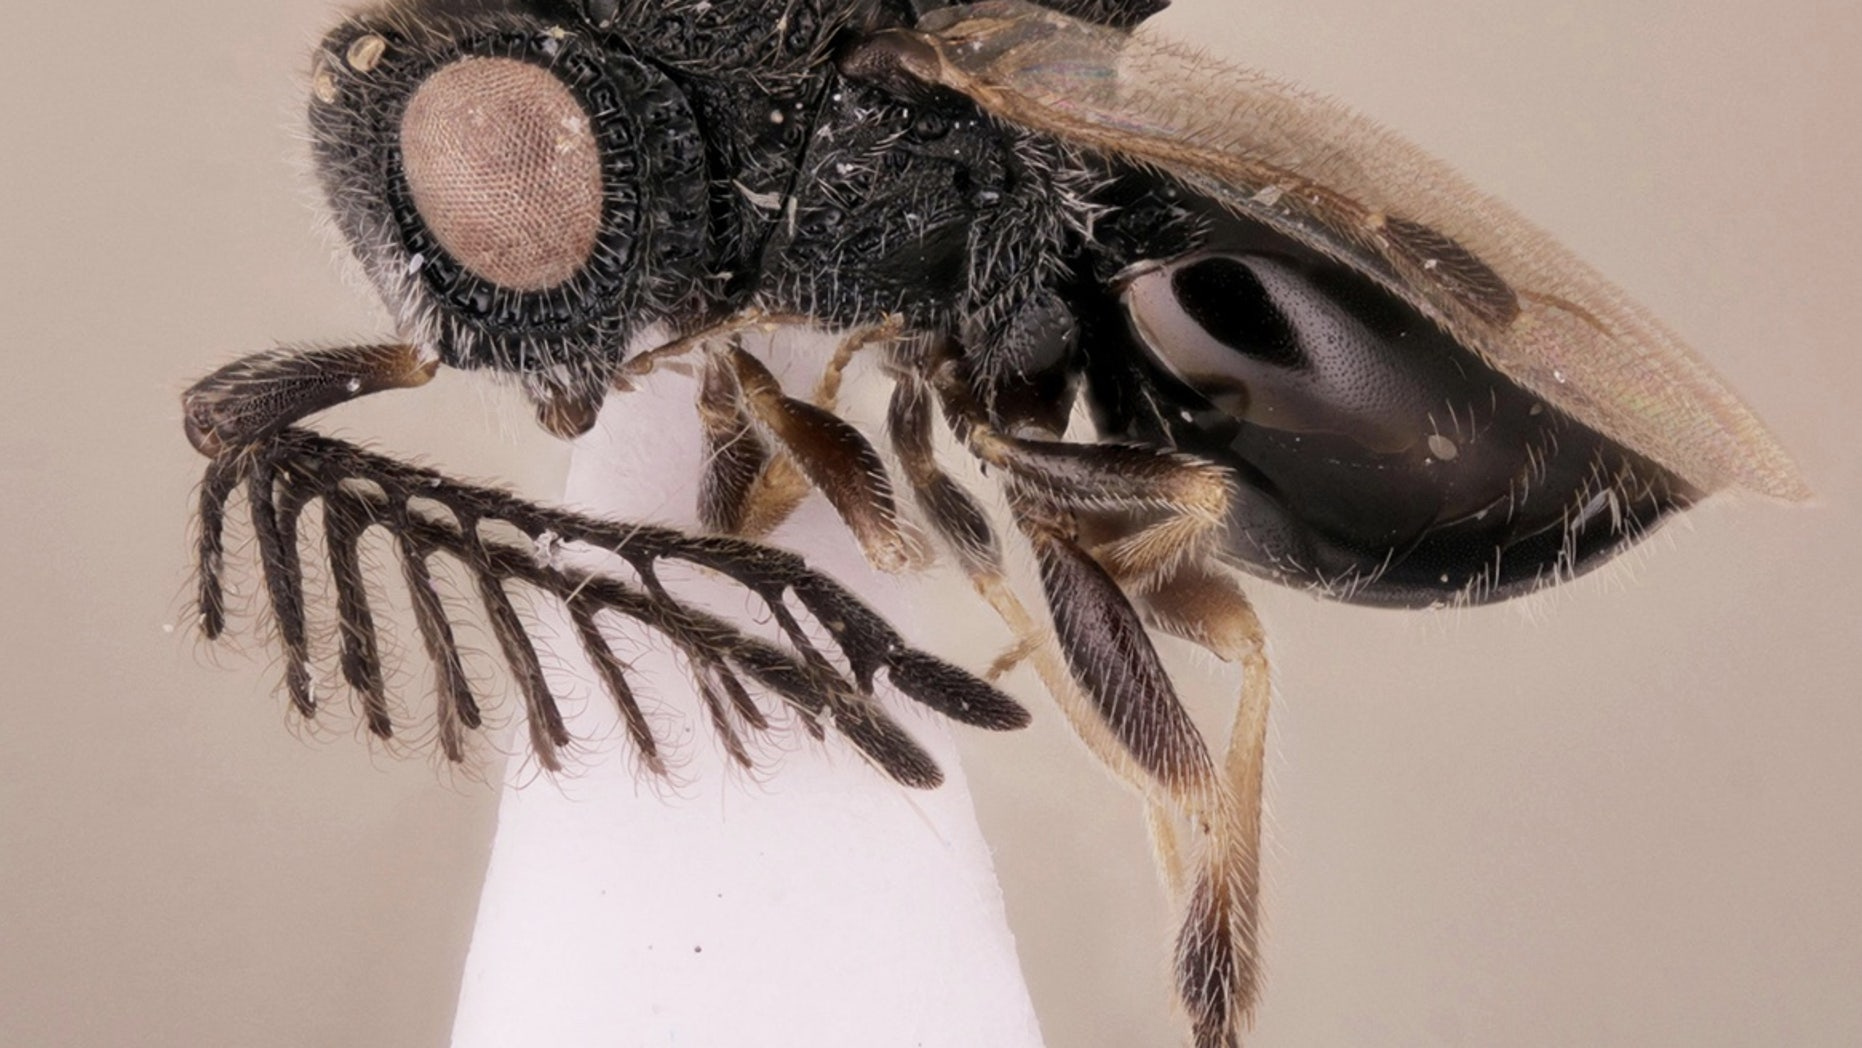 The new parasitoid wasp species, <i>Dendrocerus scutellaris</i>, wears a saw of sorts on its back.